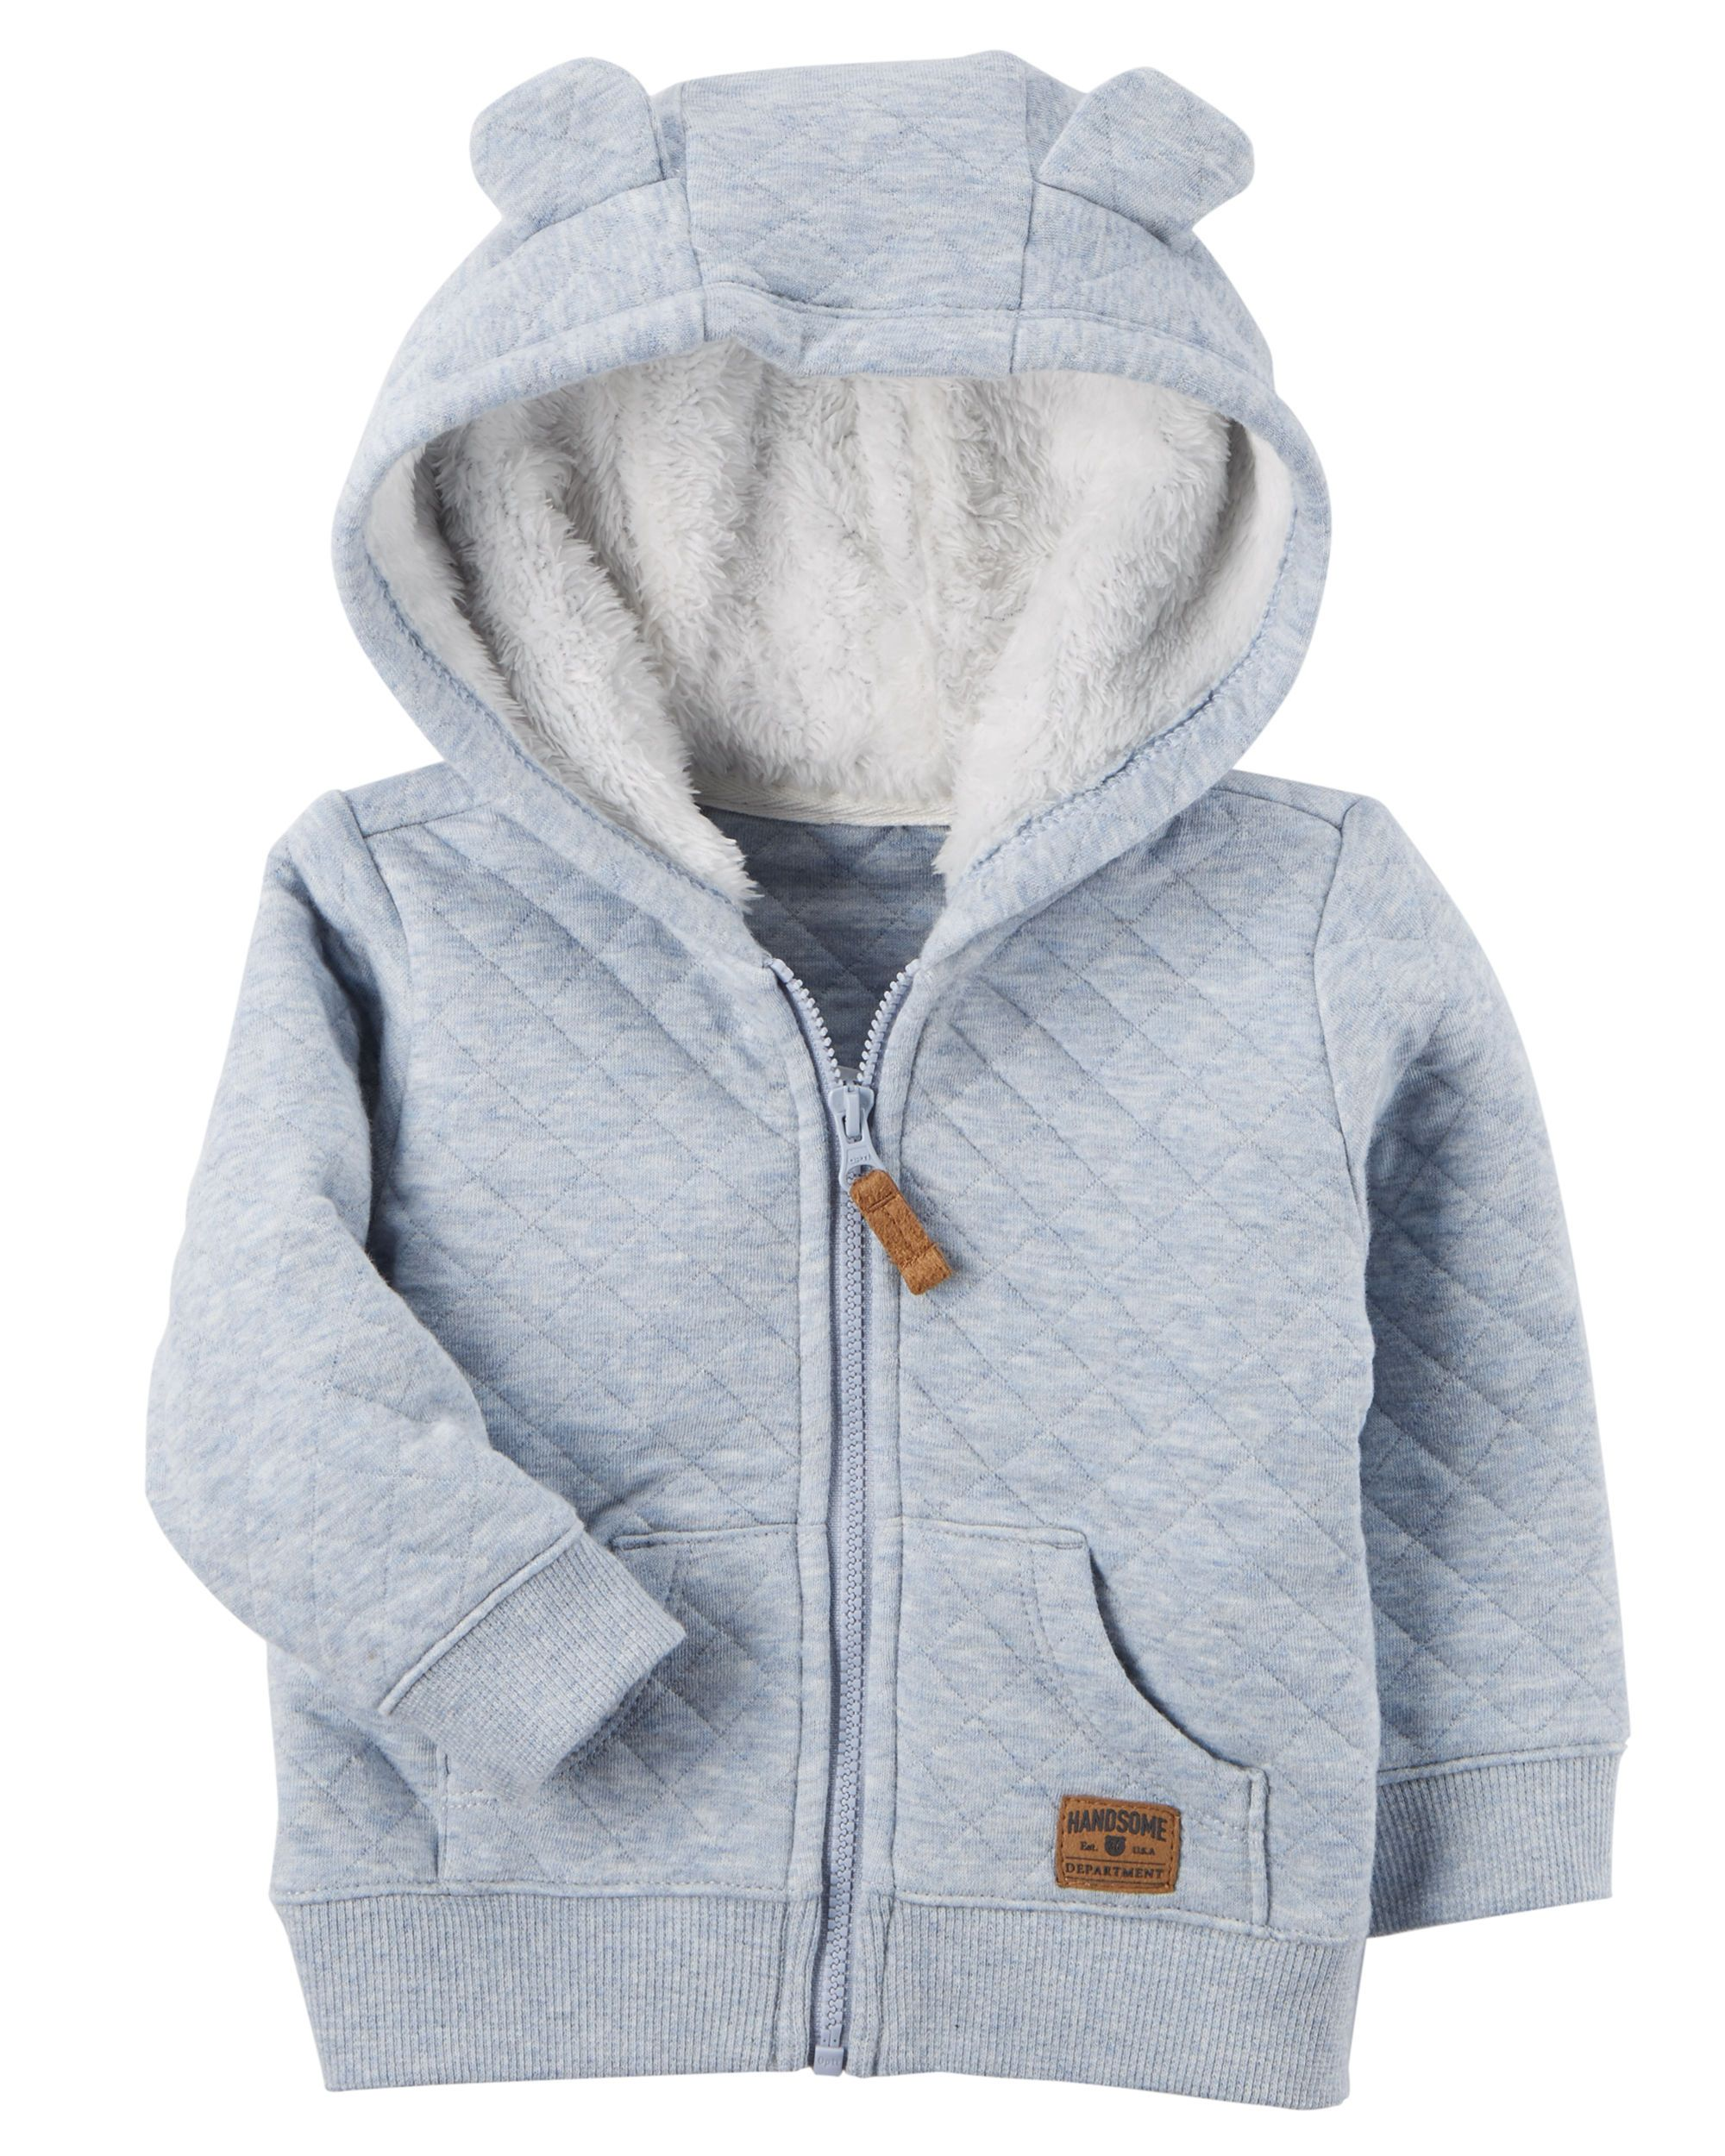 eb8d438a7ce61 Sherpa-Lined Quilted Jacket | Baby's Closet (Boy) | Jackets, Quilted ...